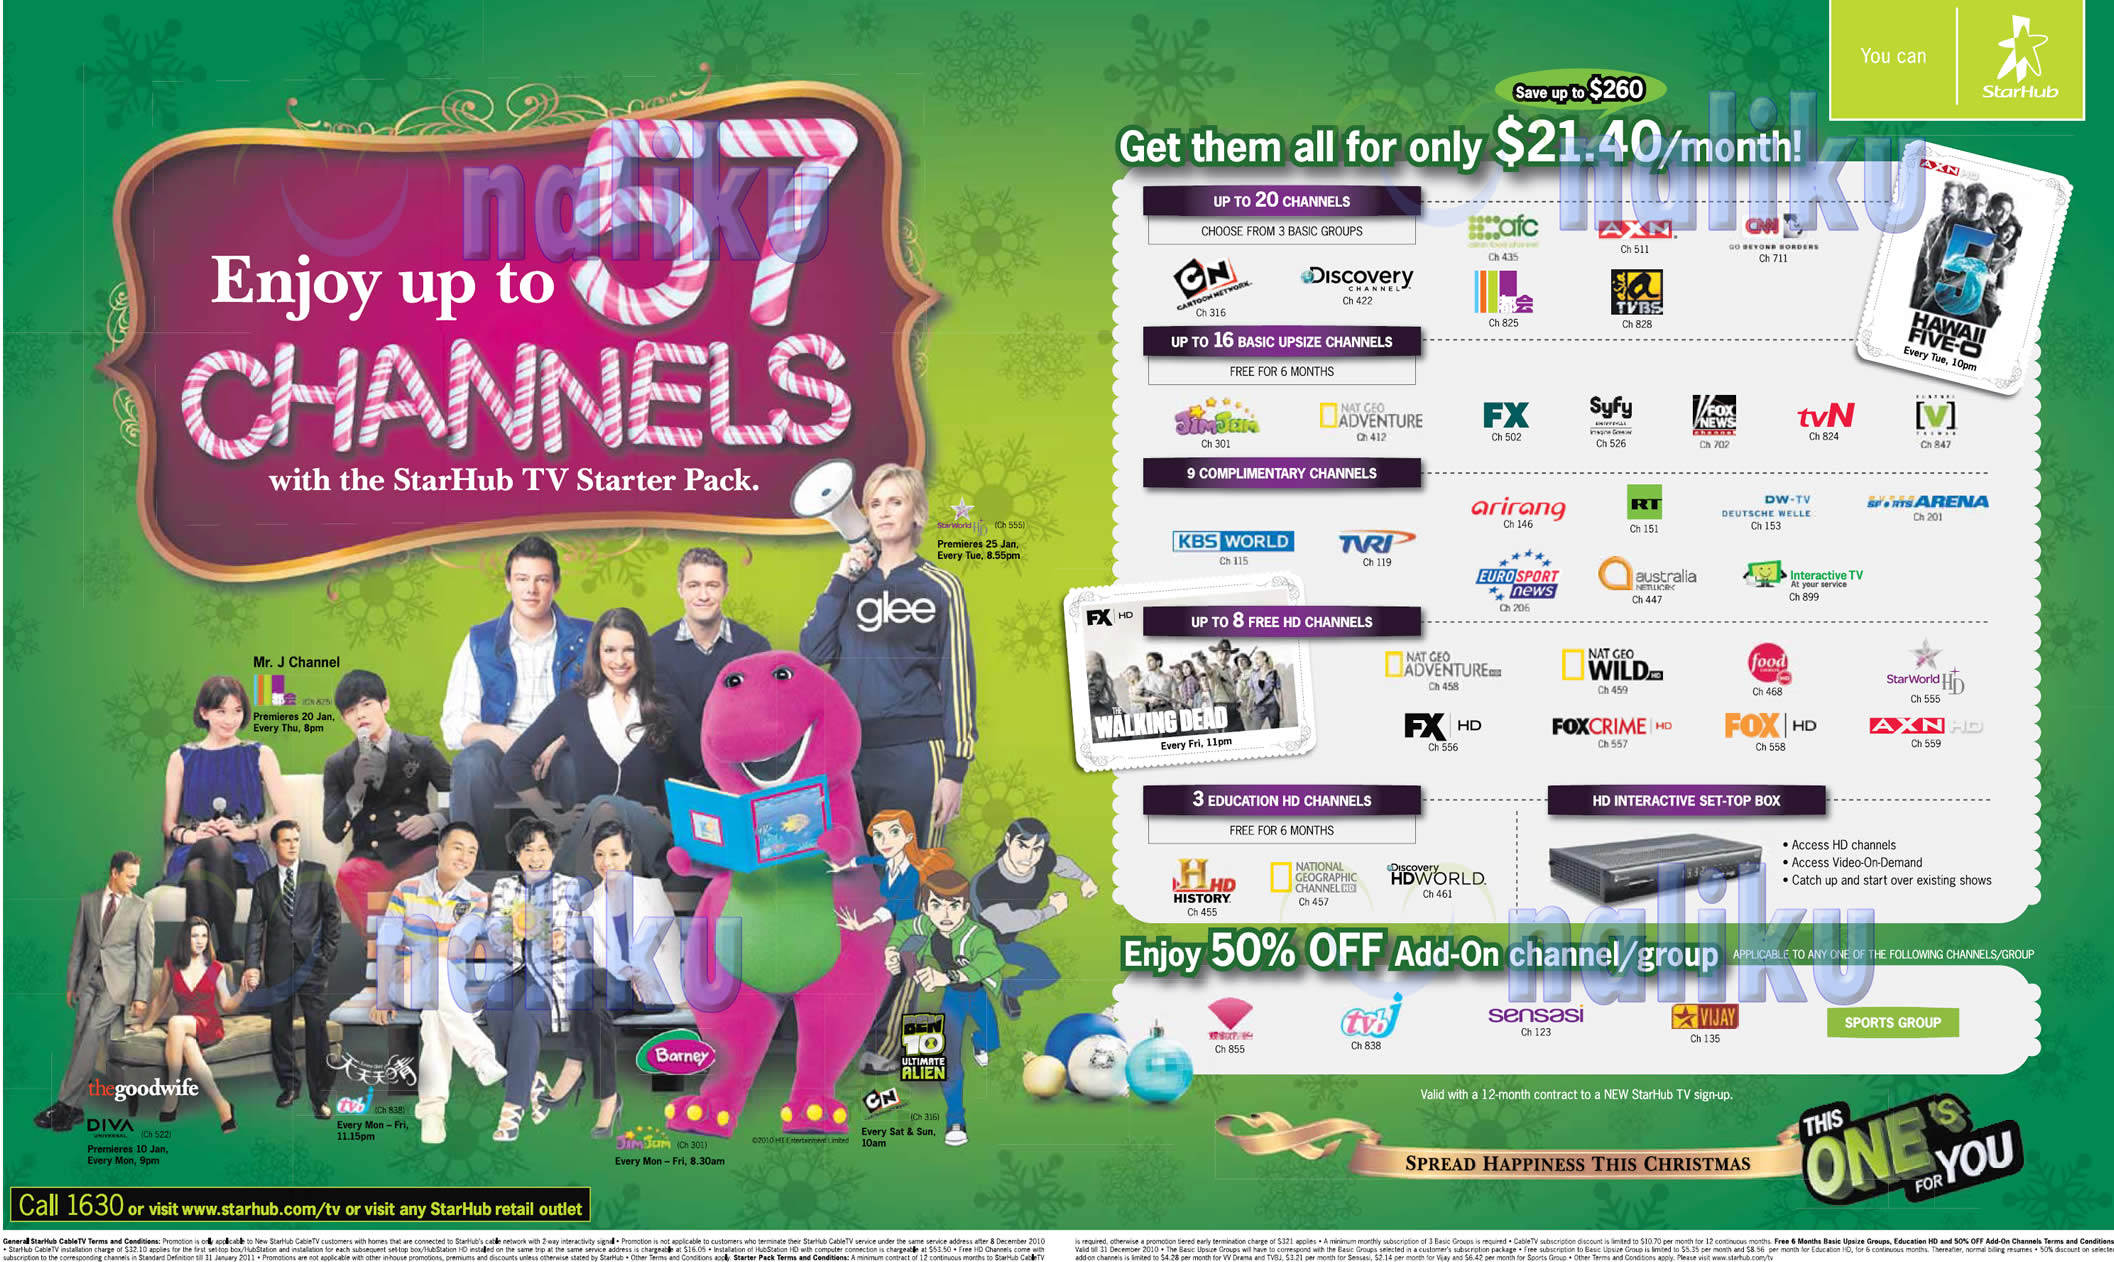 Starhub TV Starter Pack December 2010 Christmas Promotion - Starhub TV ...